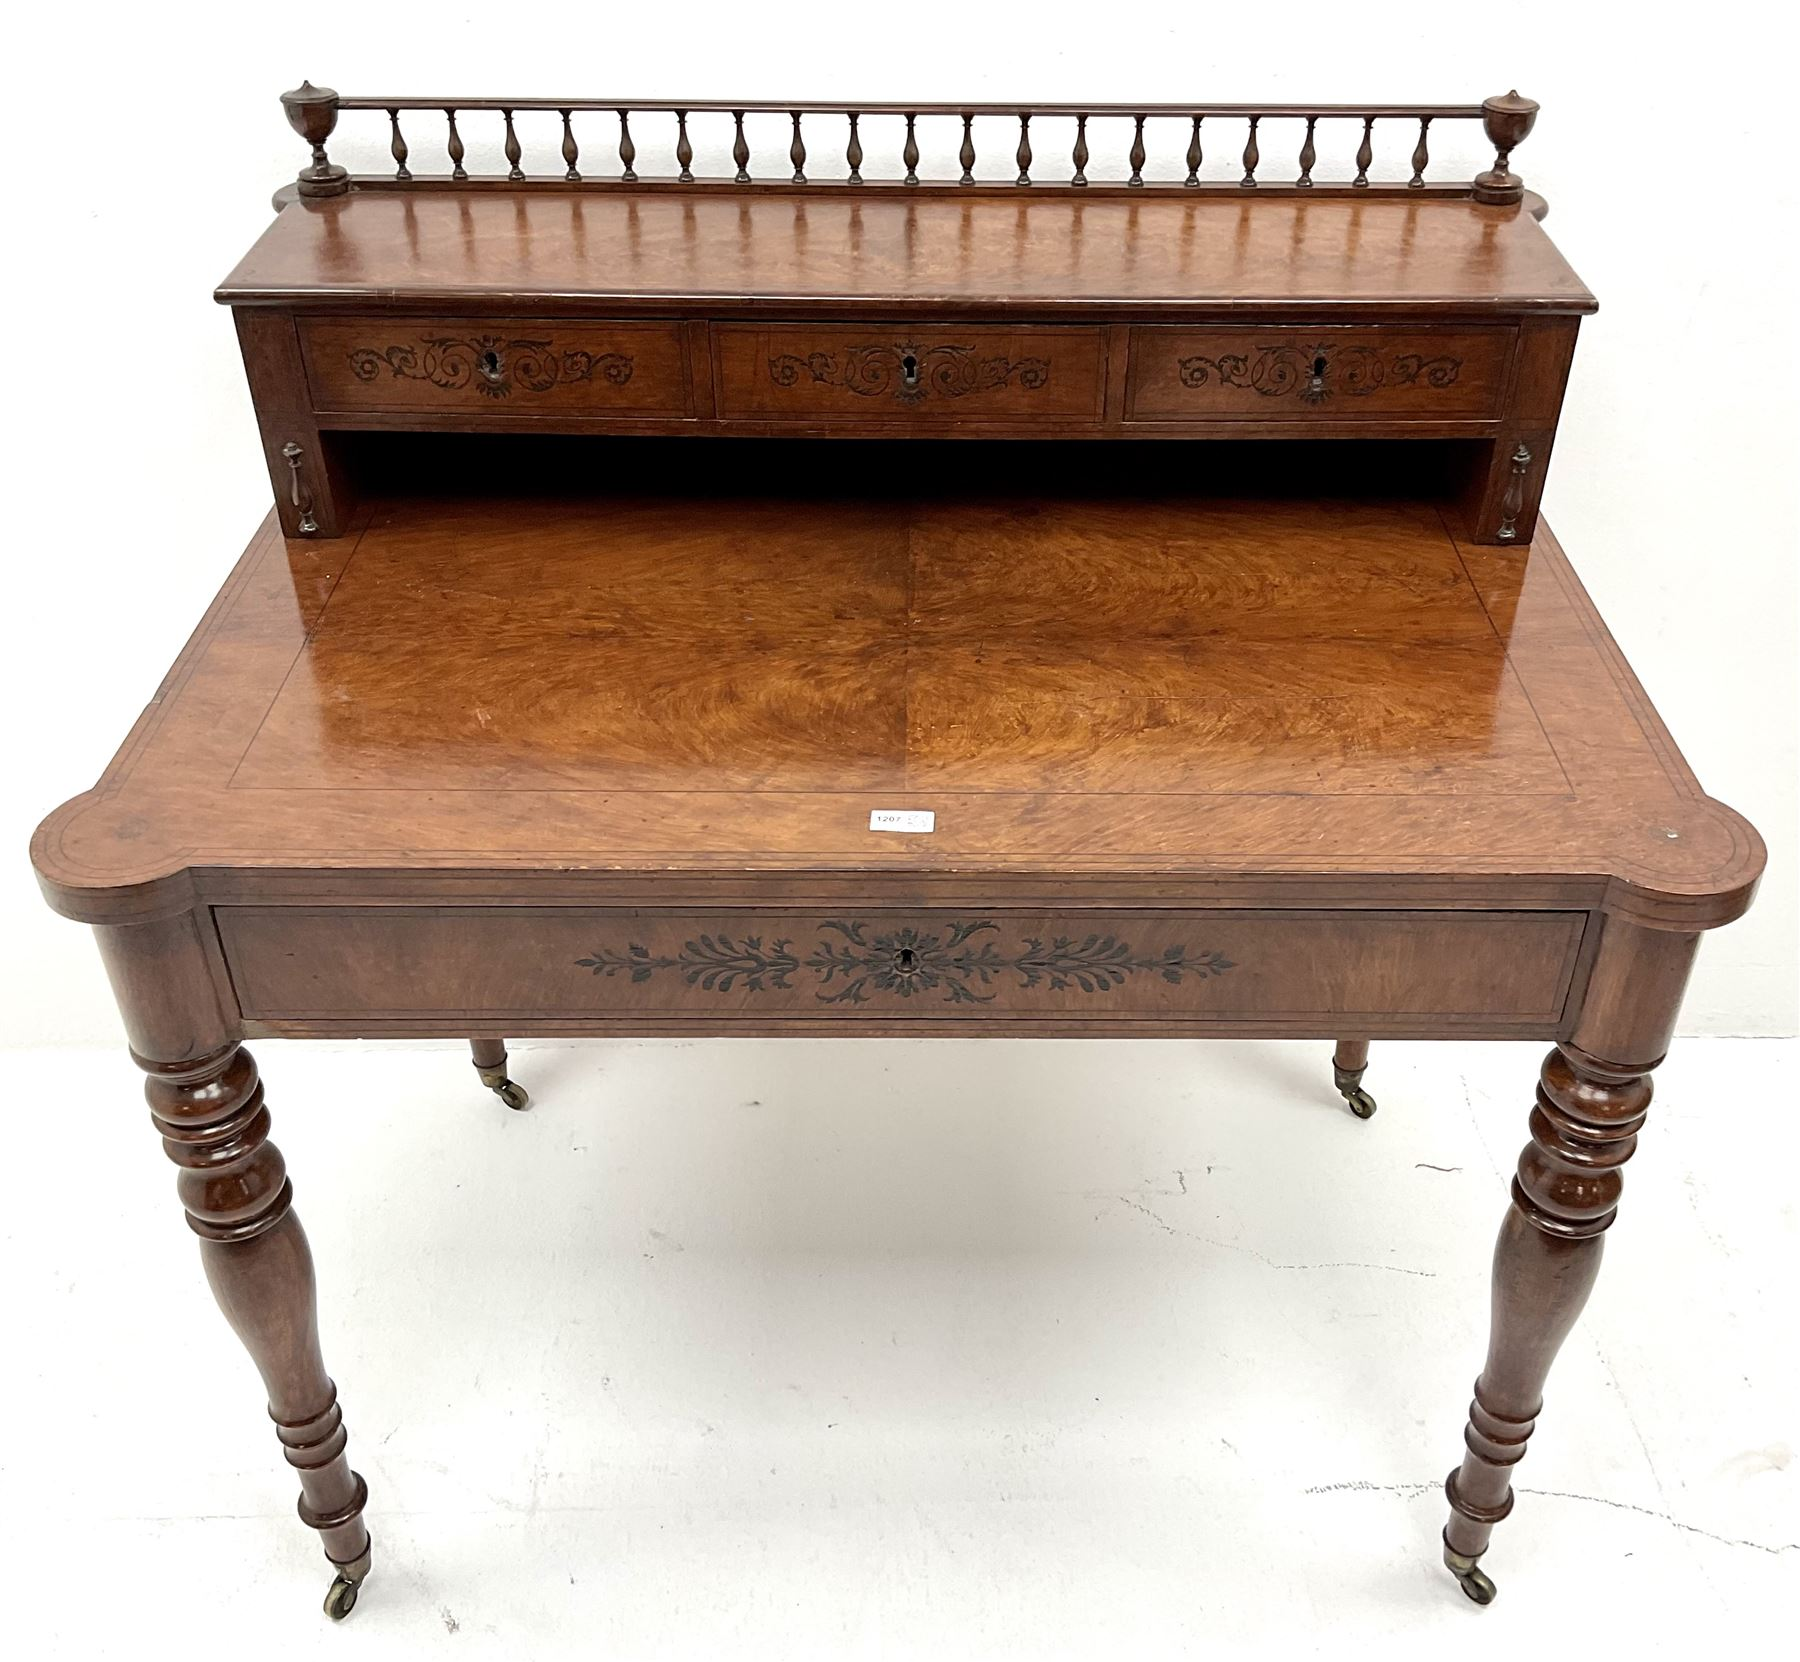 19th century inlaid grained oak writing desk - Image 3 of 4